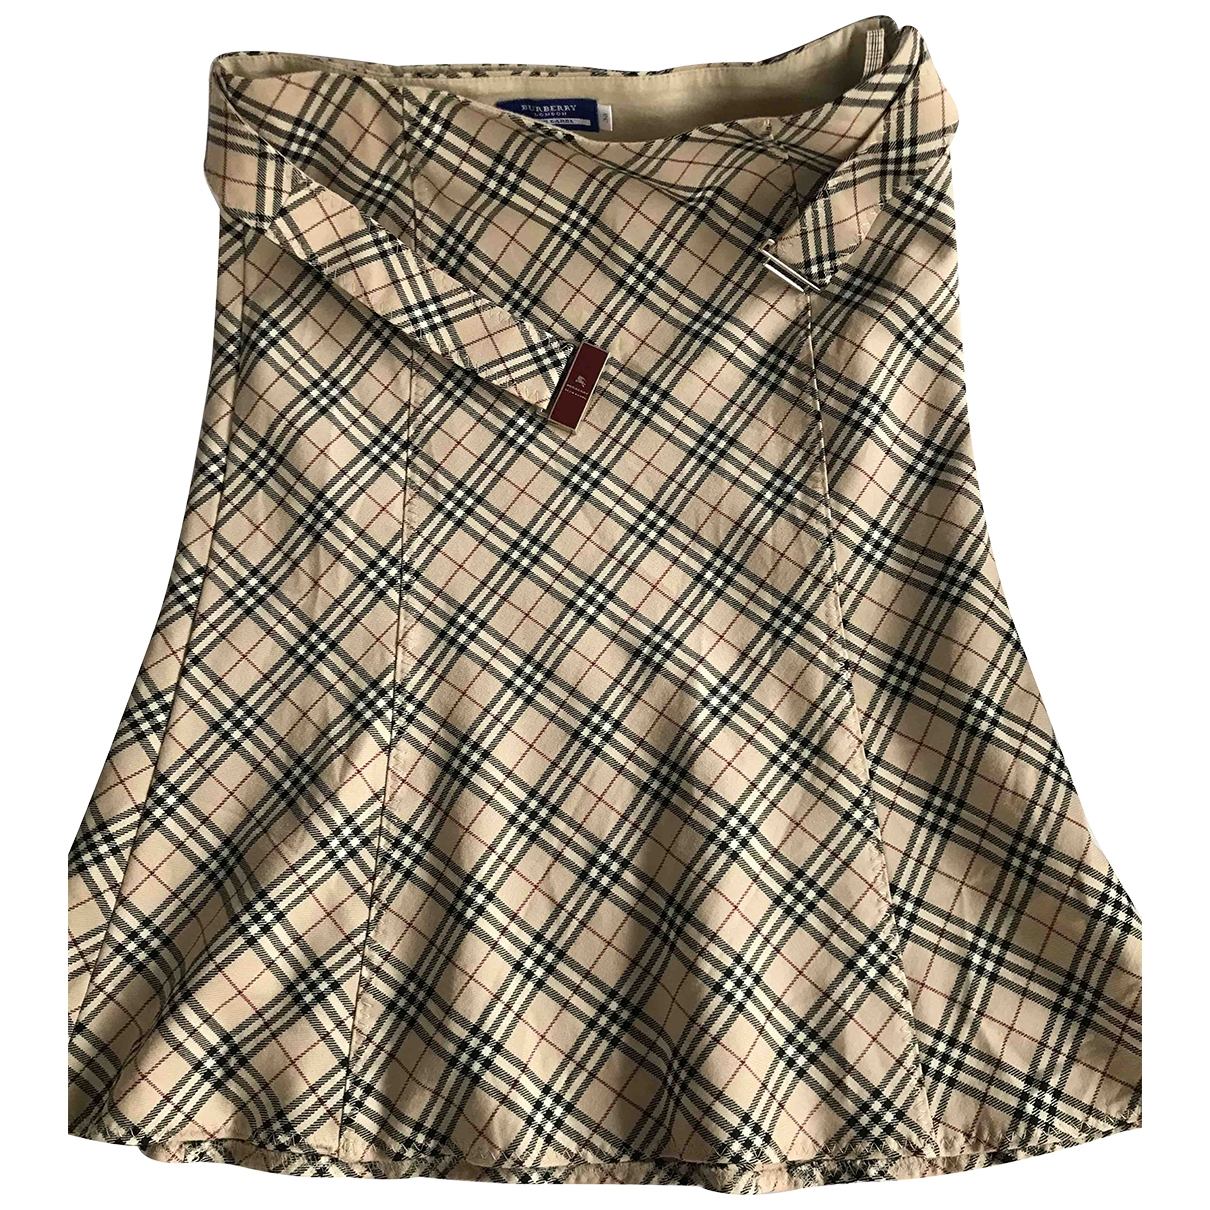 Burberry \N Beige Cotton - elasthane skirt for Women 38 FR